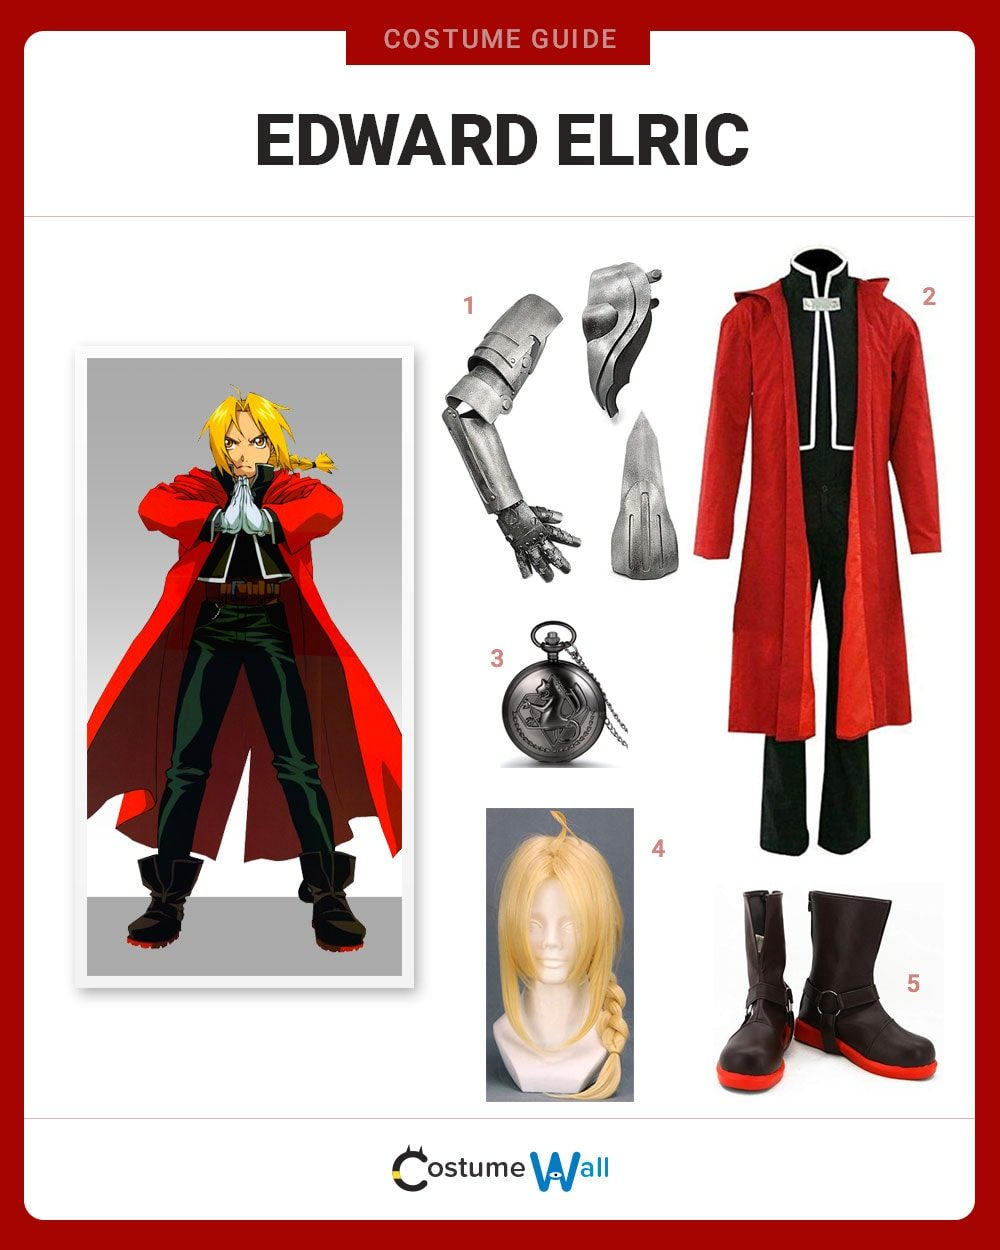 Edward Elric Costume Guide